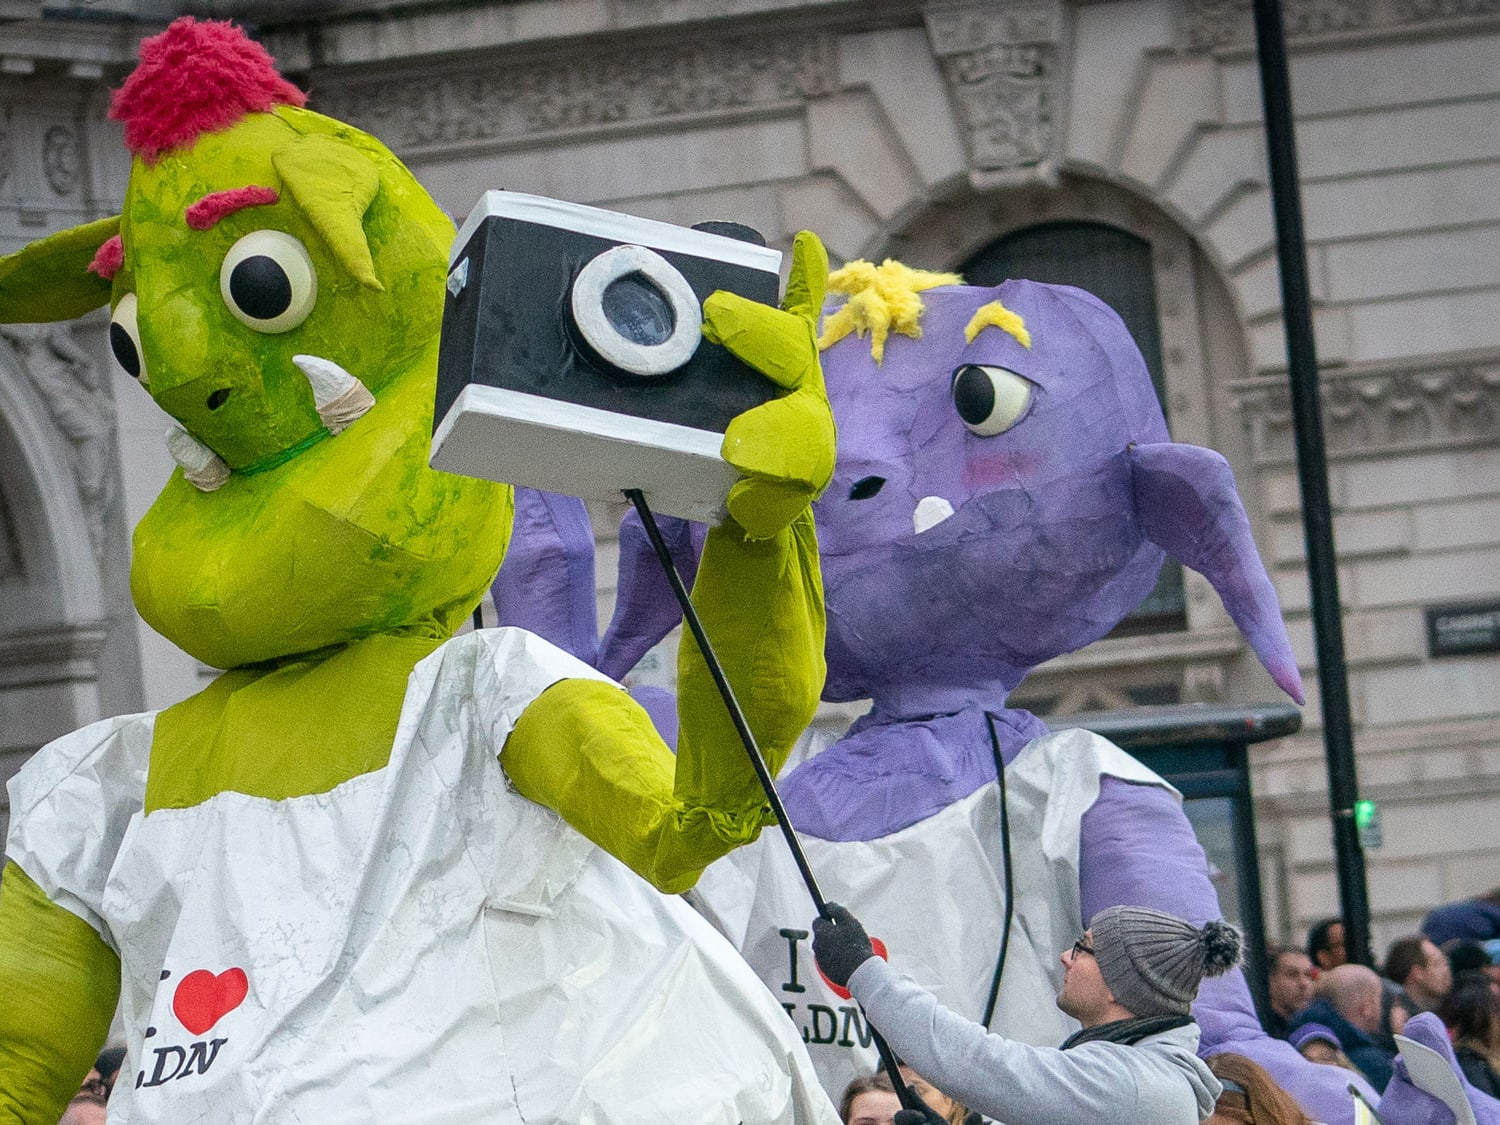 Two large alien puppets, one green and one purple.